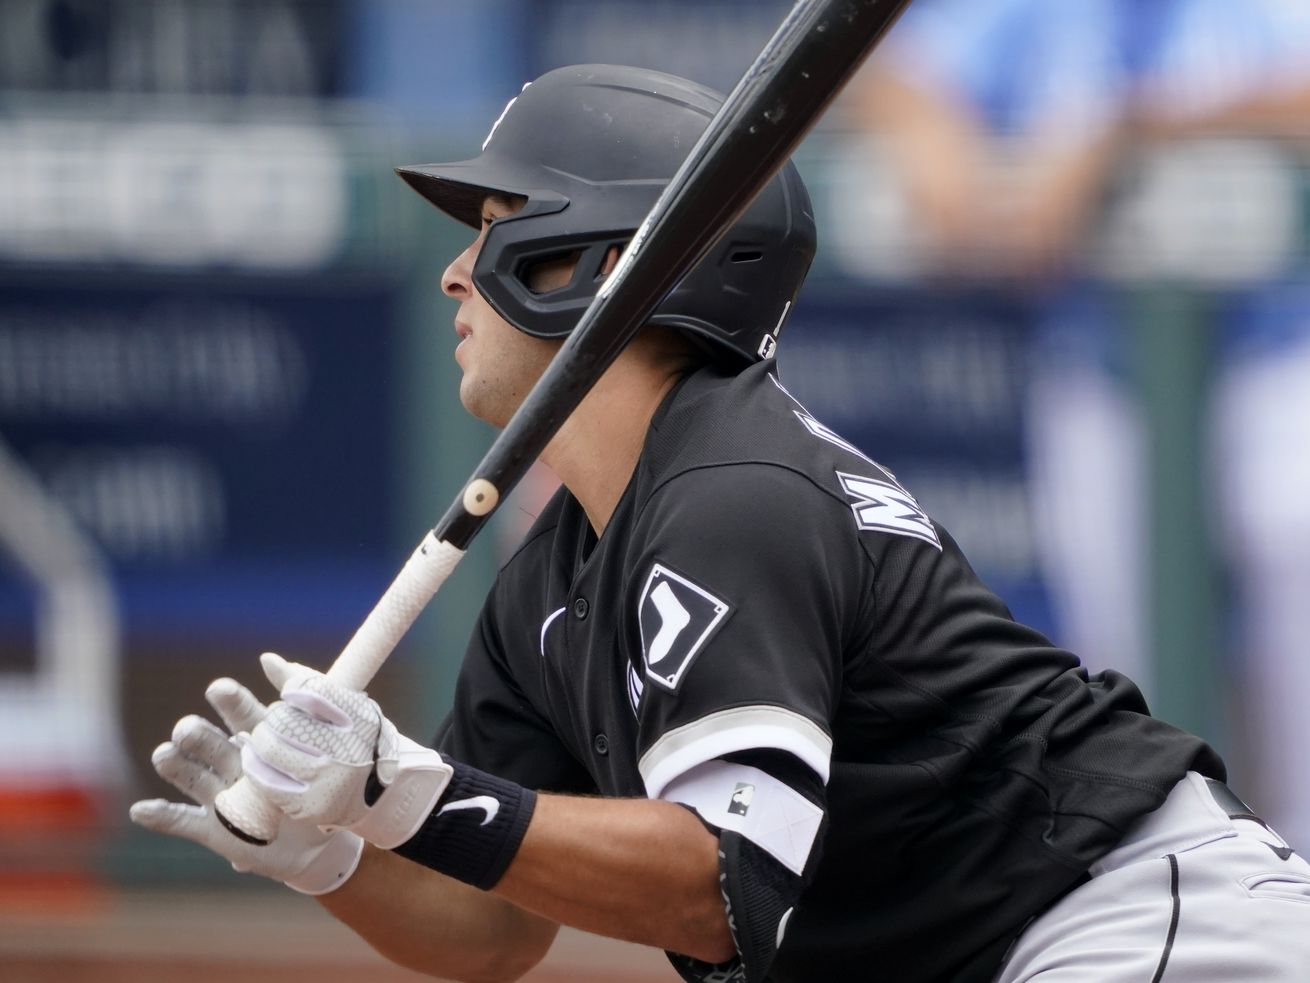 Nick Madrigal gets four hits as White Sox sweep Royals